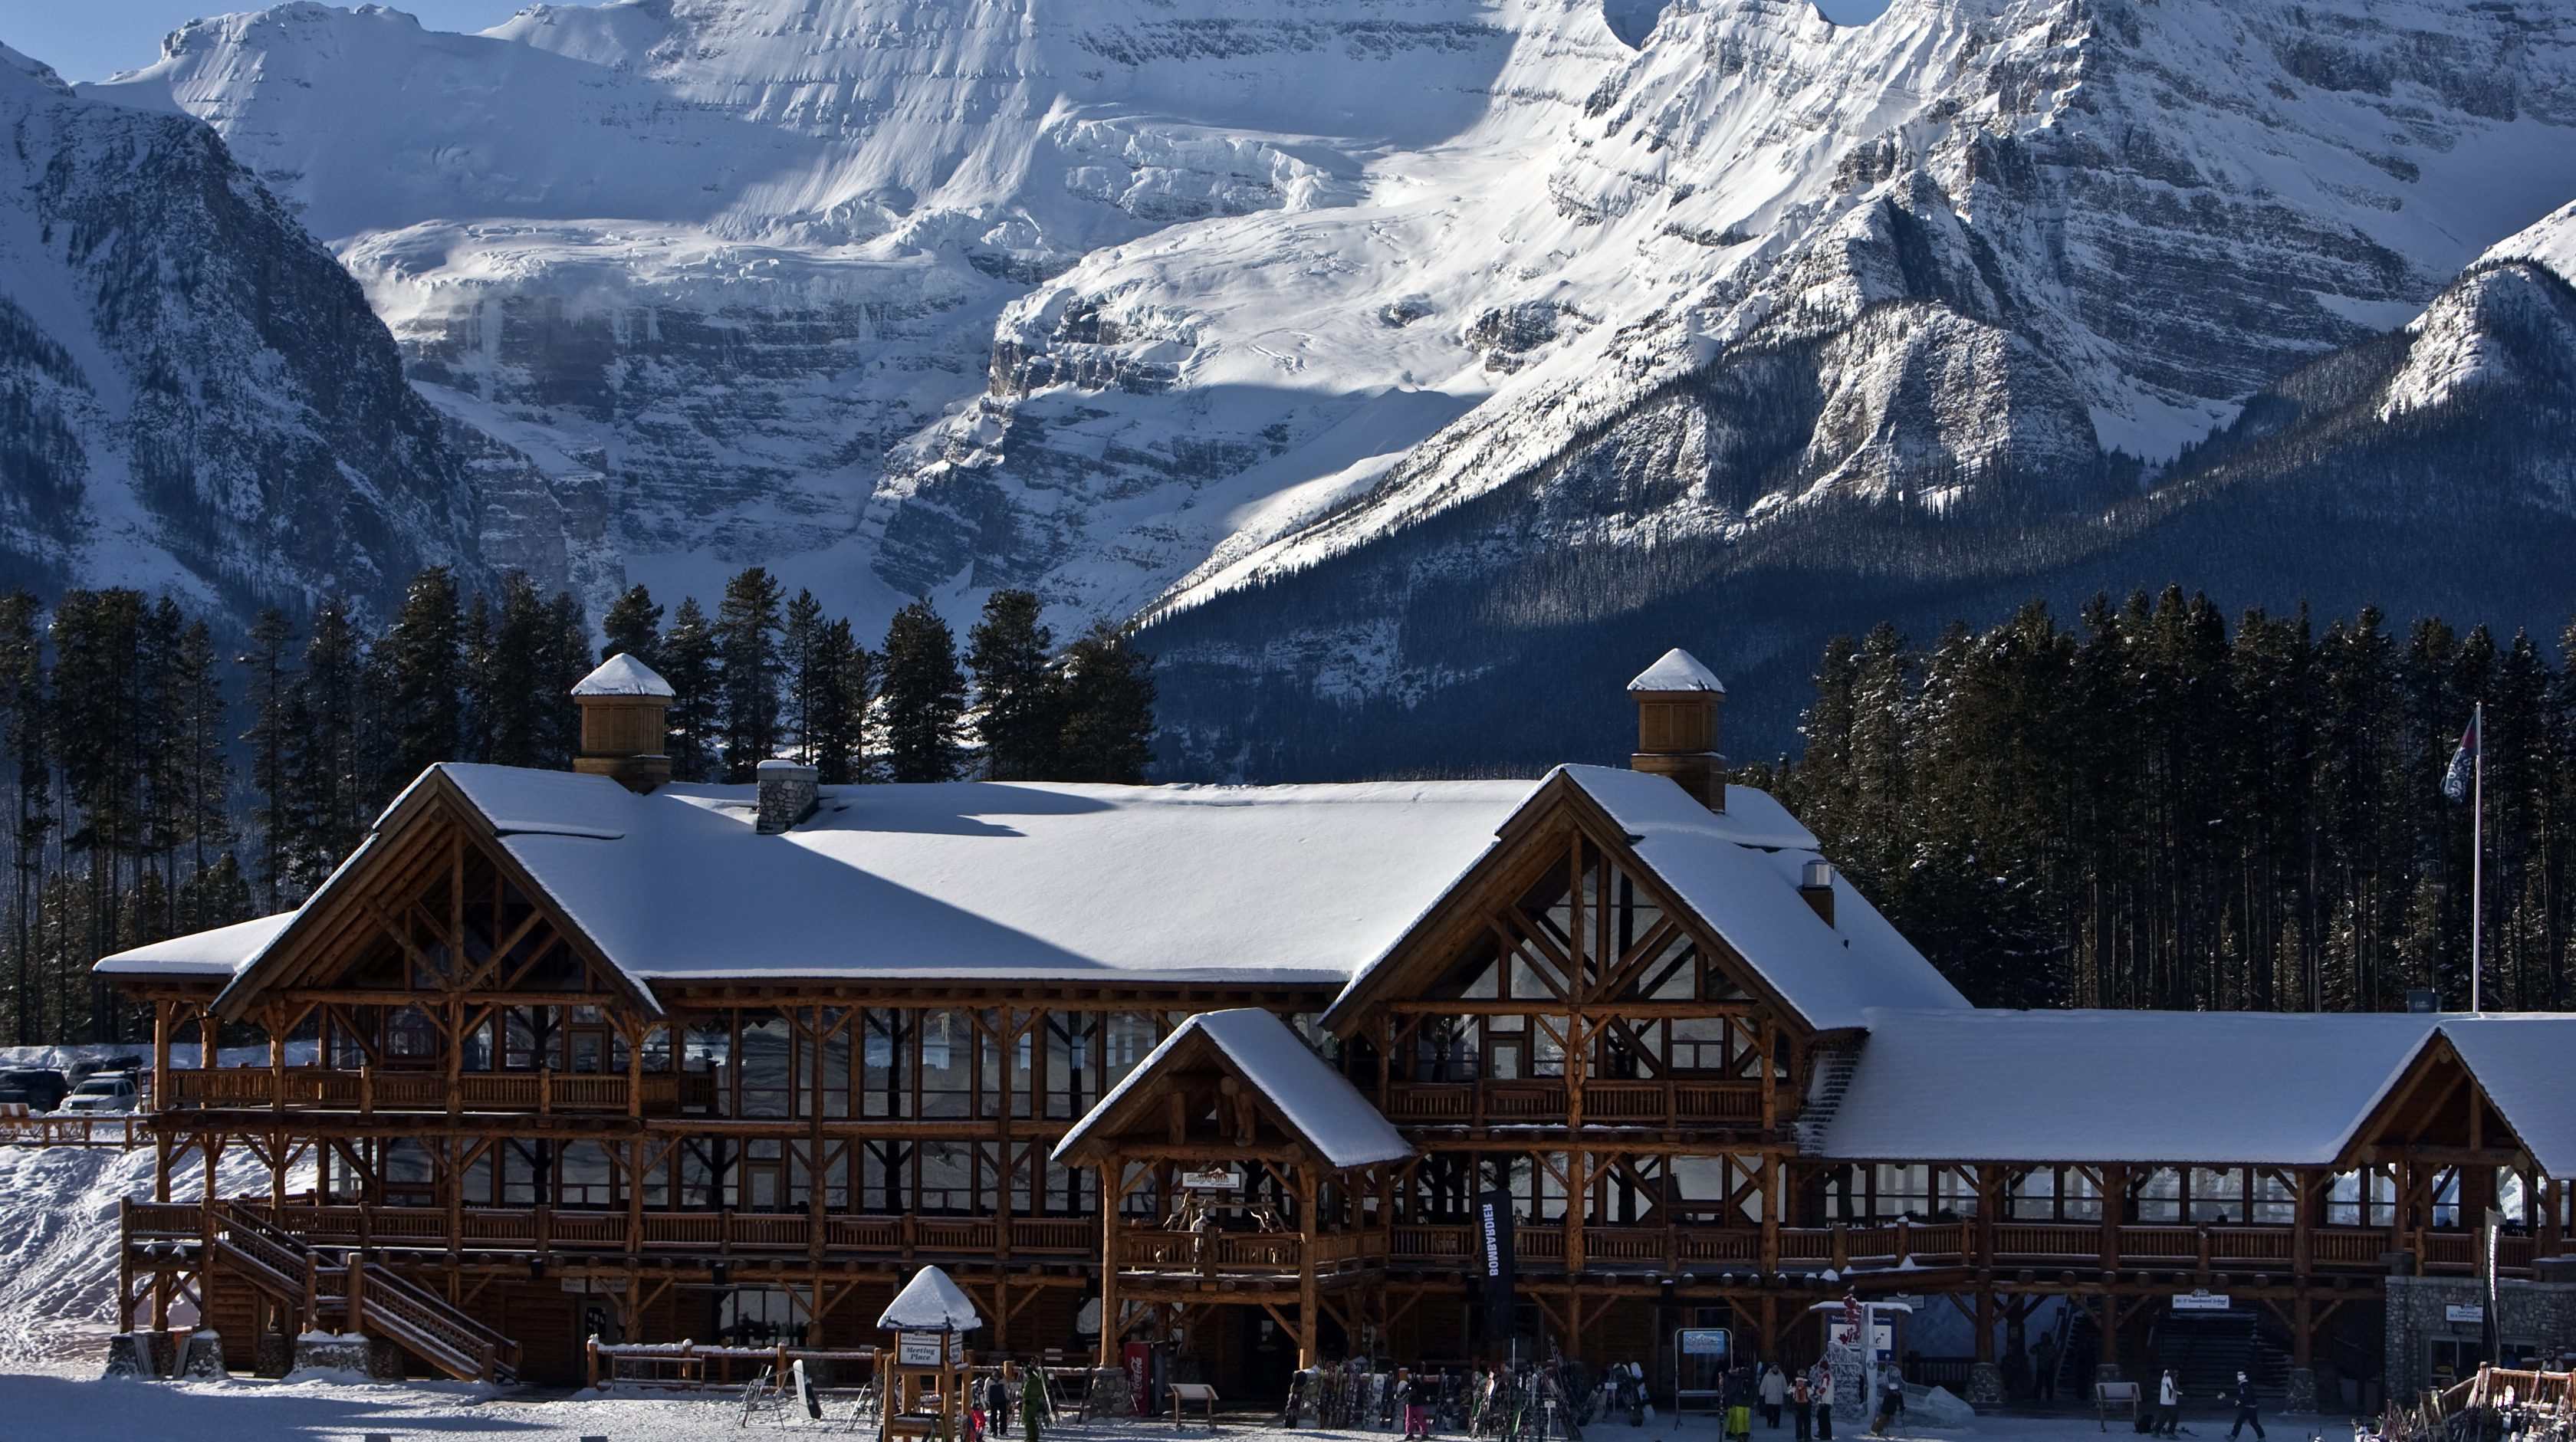 A morning view of the Whiskey Jack Lodge at the foot of the ski hills in Lake Louise, Alberta situated in Banff National Park in the Canadian Rockie Mountains. December 1, 2009. REUTERS/Andy Clark (CANADA TRAVEL) - GM1E5C403JM01